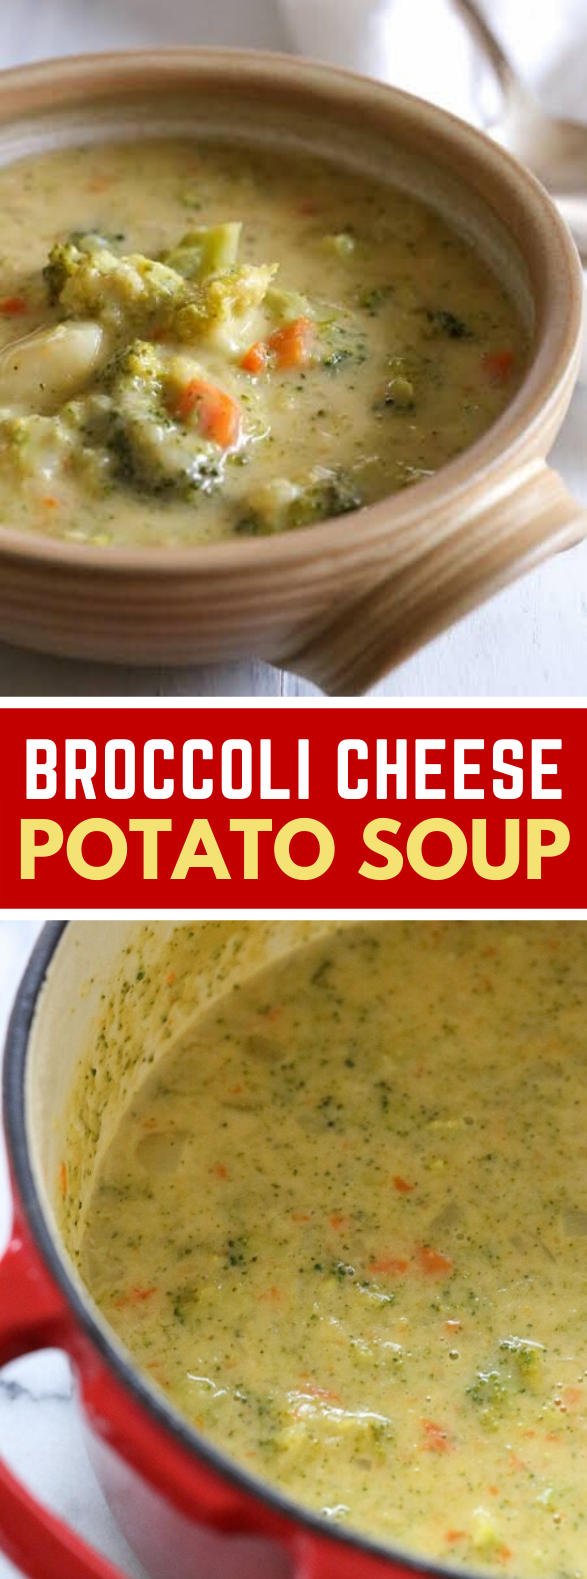 BROCCOLI CHEESE AND POTATO SOUP #vegetarian #healthy